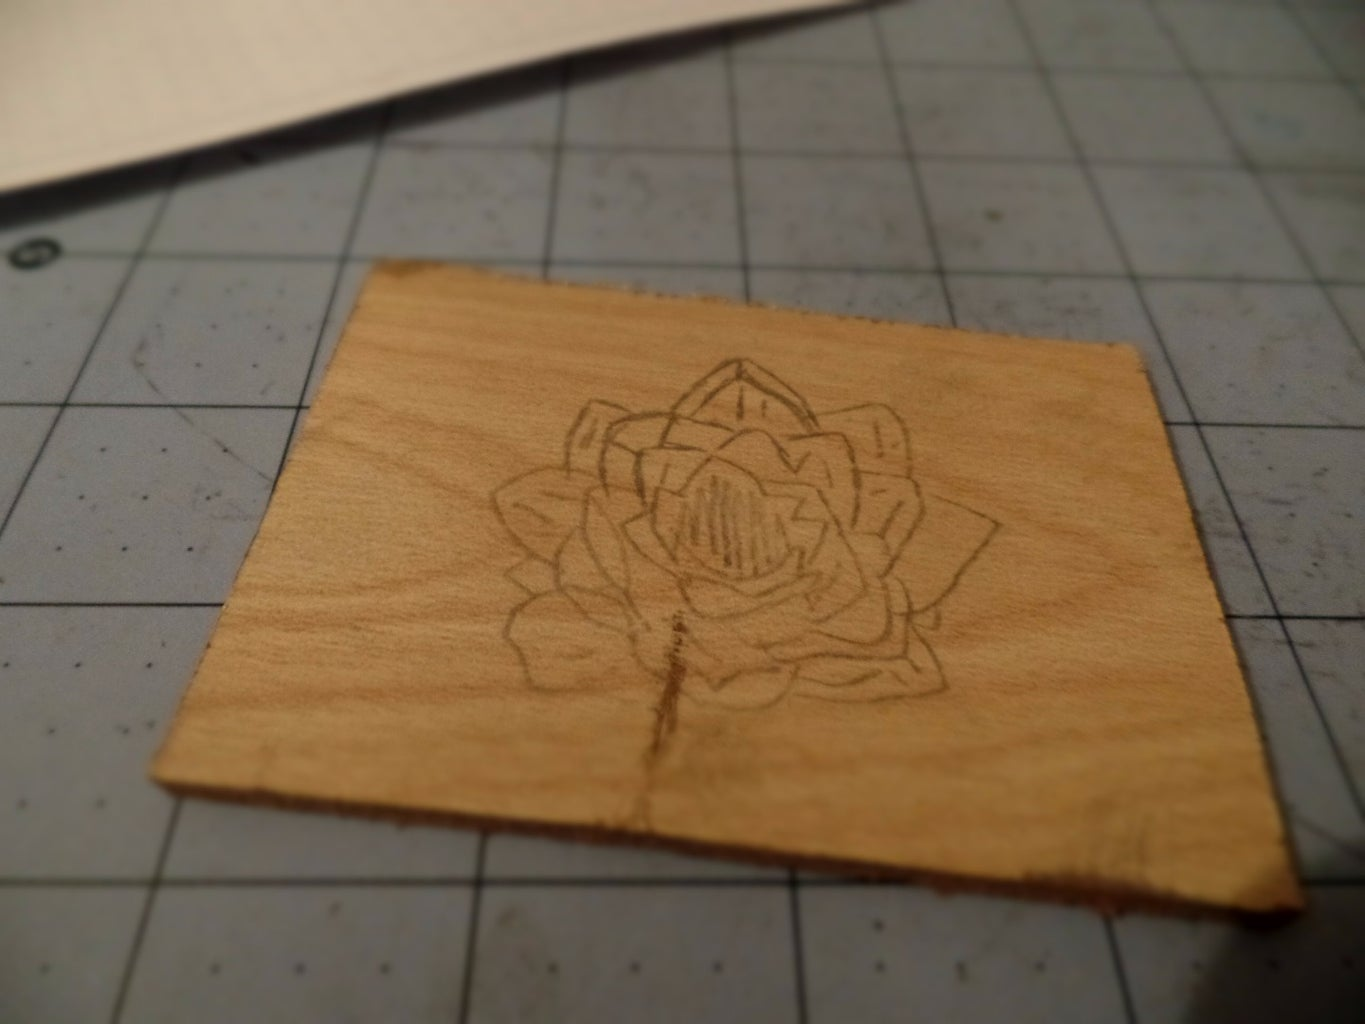 Copy Your Design Onto the Piece of Wood